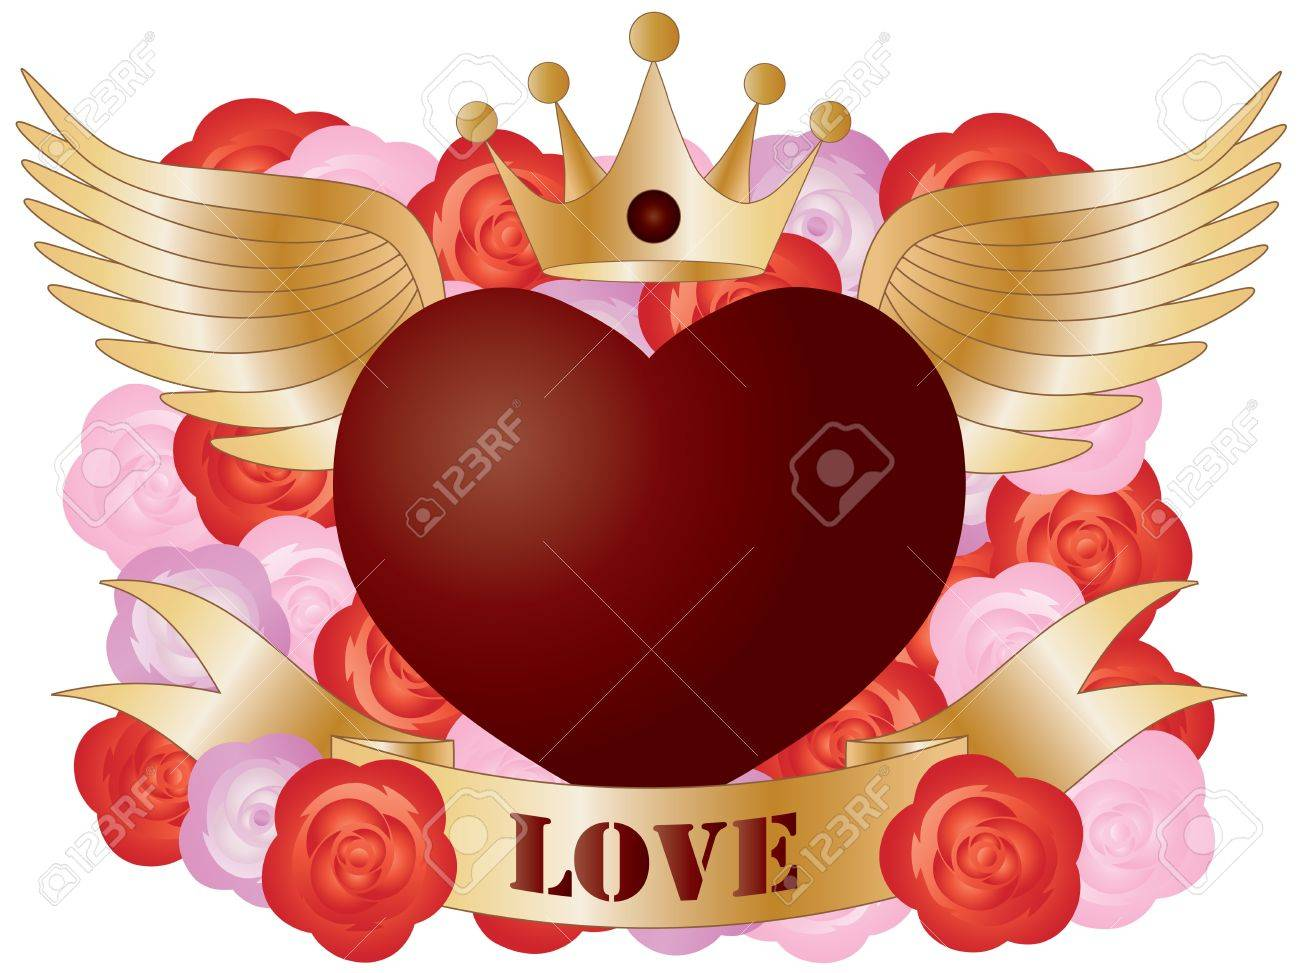 Flying Red Heart with Banner and Roses Illustration Stock Vector - 13370033